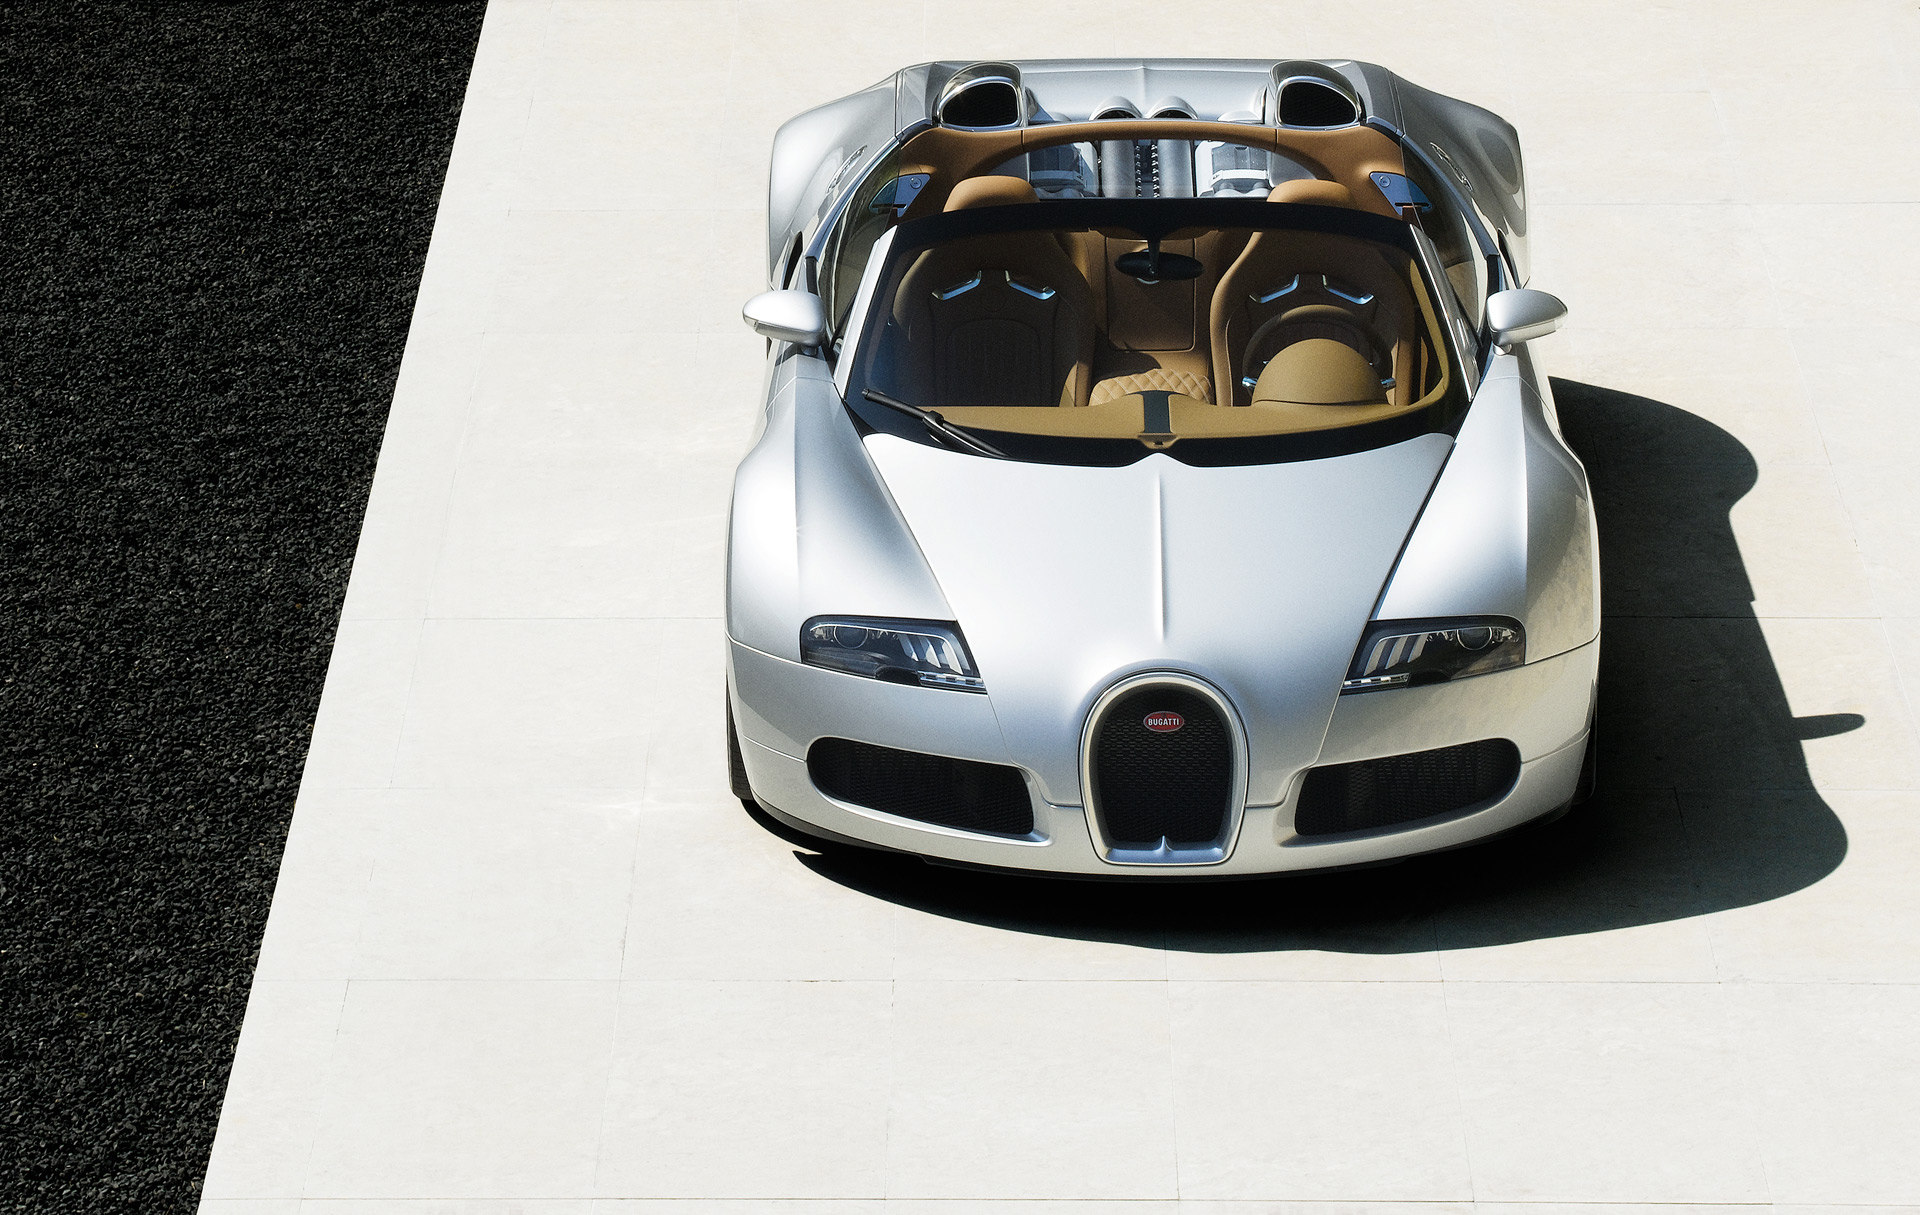 Bugatti Bought Back The First Veyron Grand Sport Prototype And Restored It